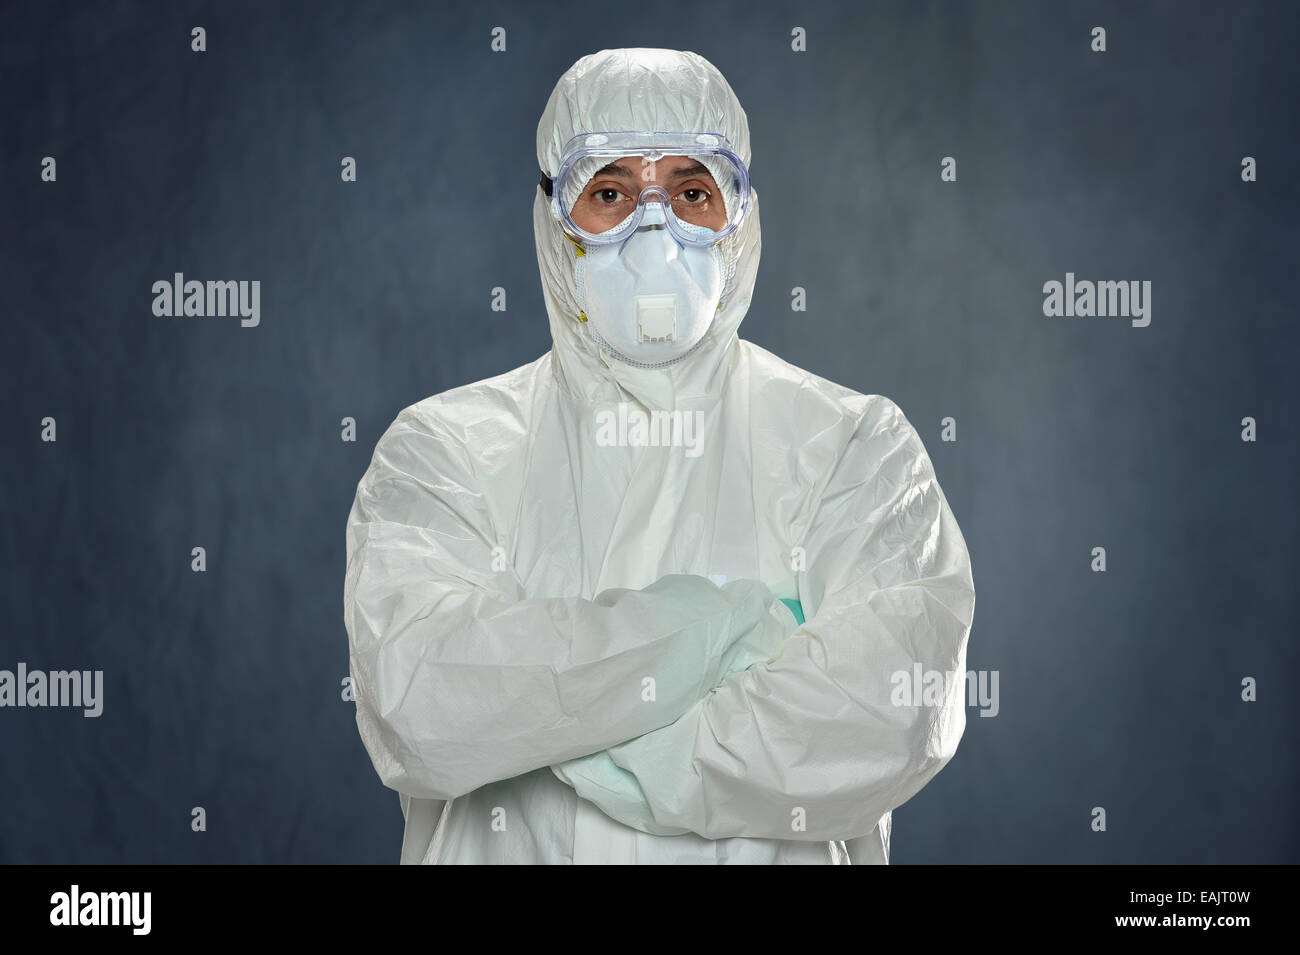 Man in Hazmat suit, protective gloves and goggles inside tent - Stock Image